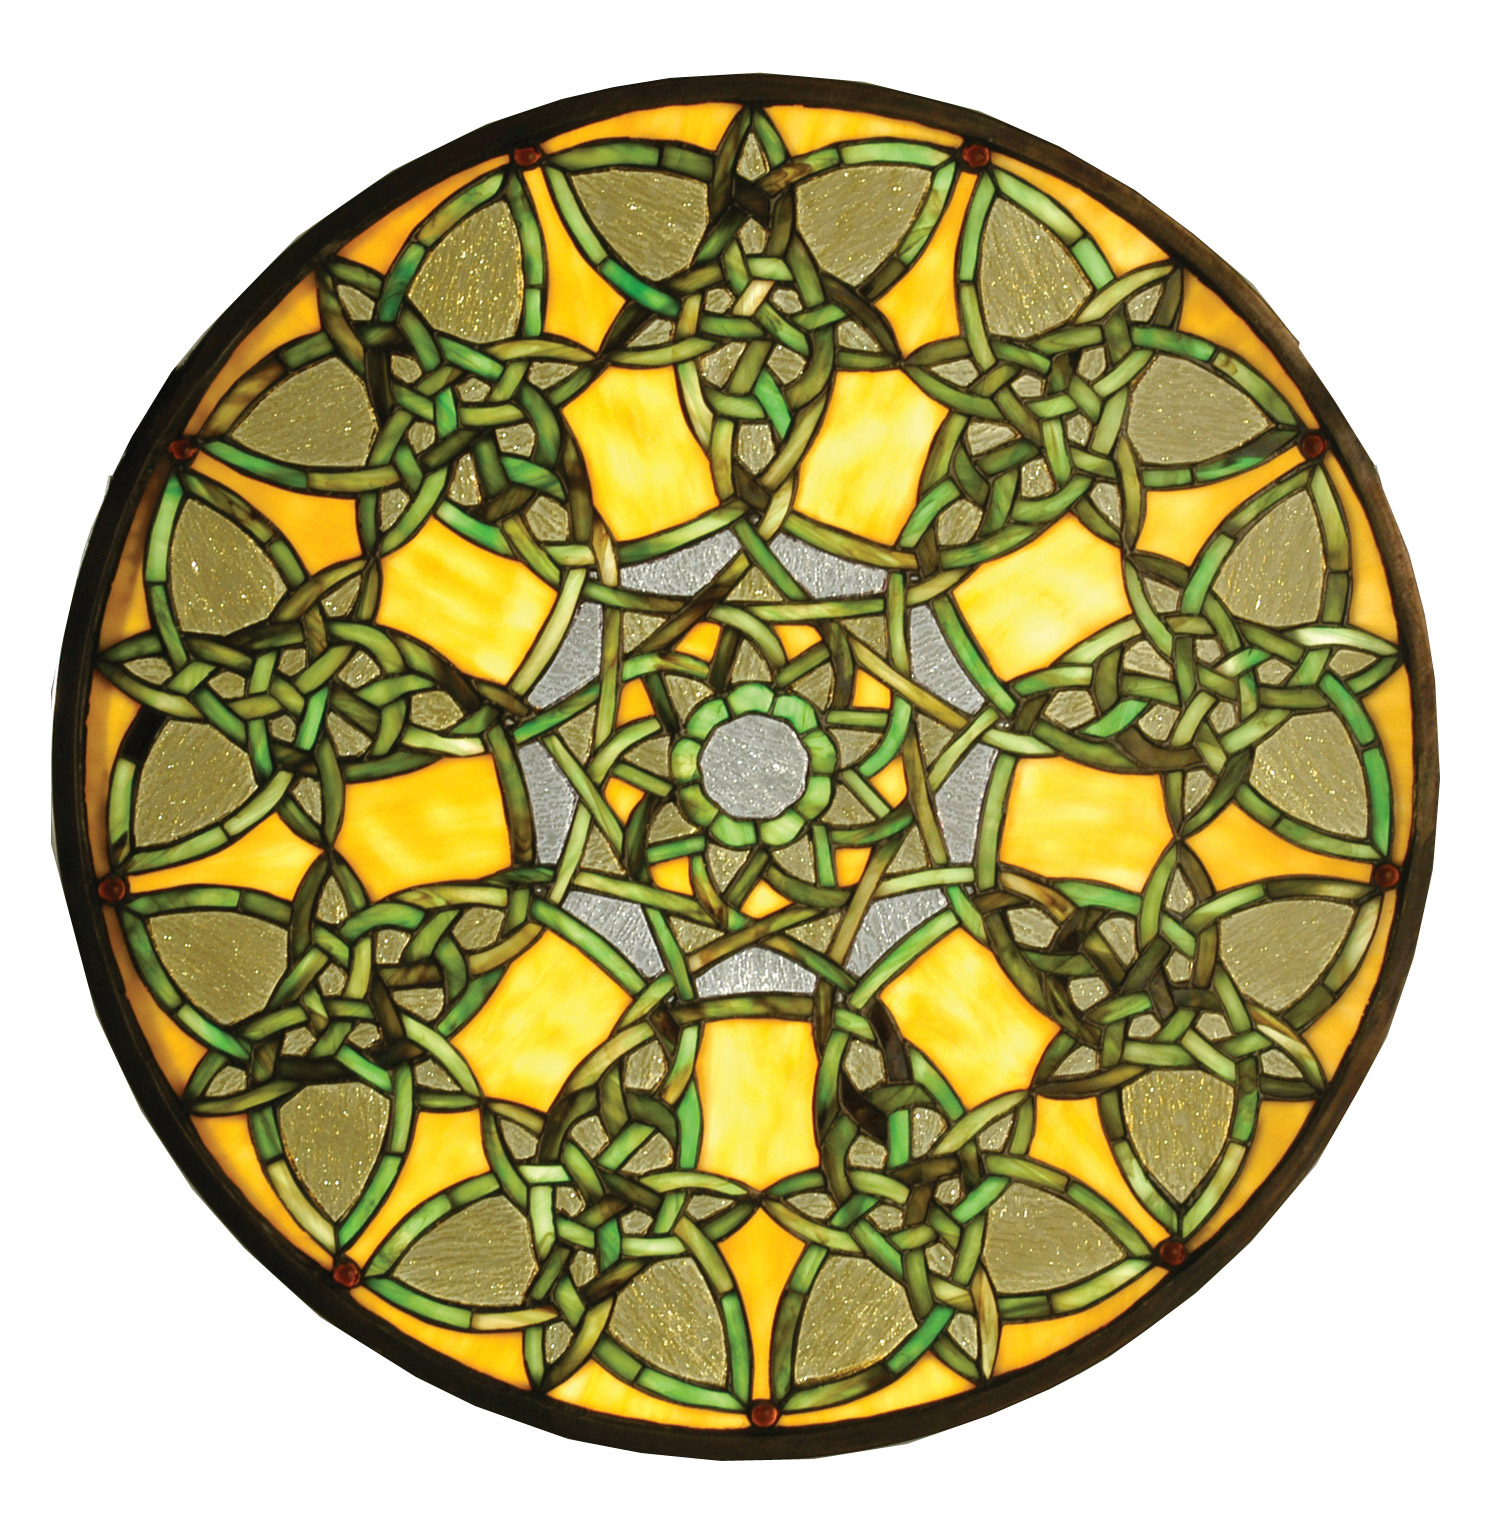 Meyda 51531 Tiffany Knotwork Trance Medallion Stained